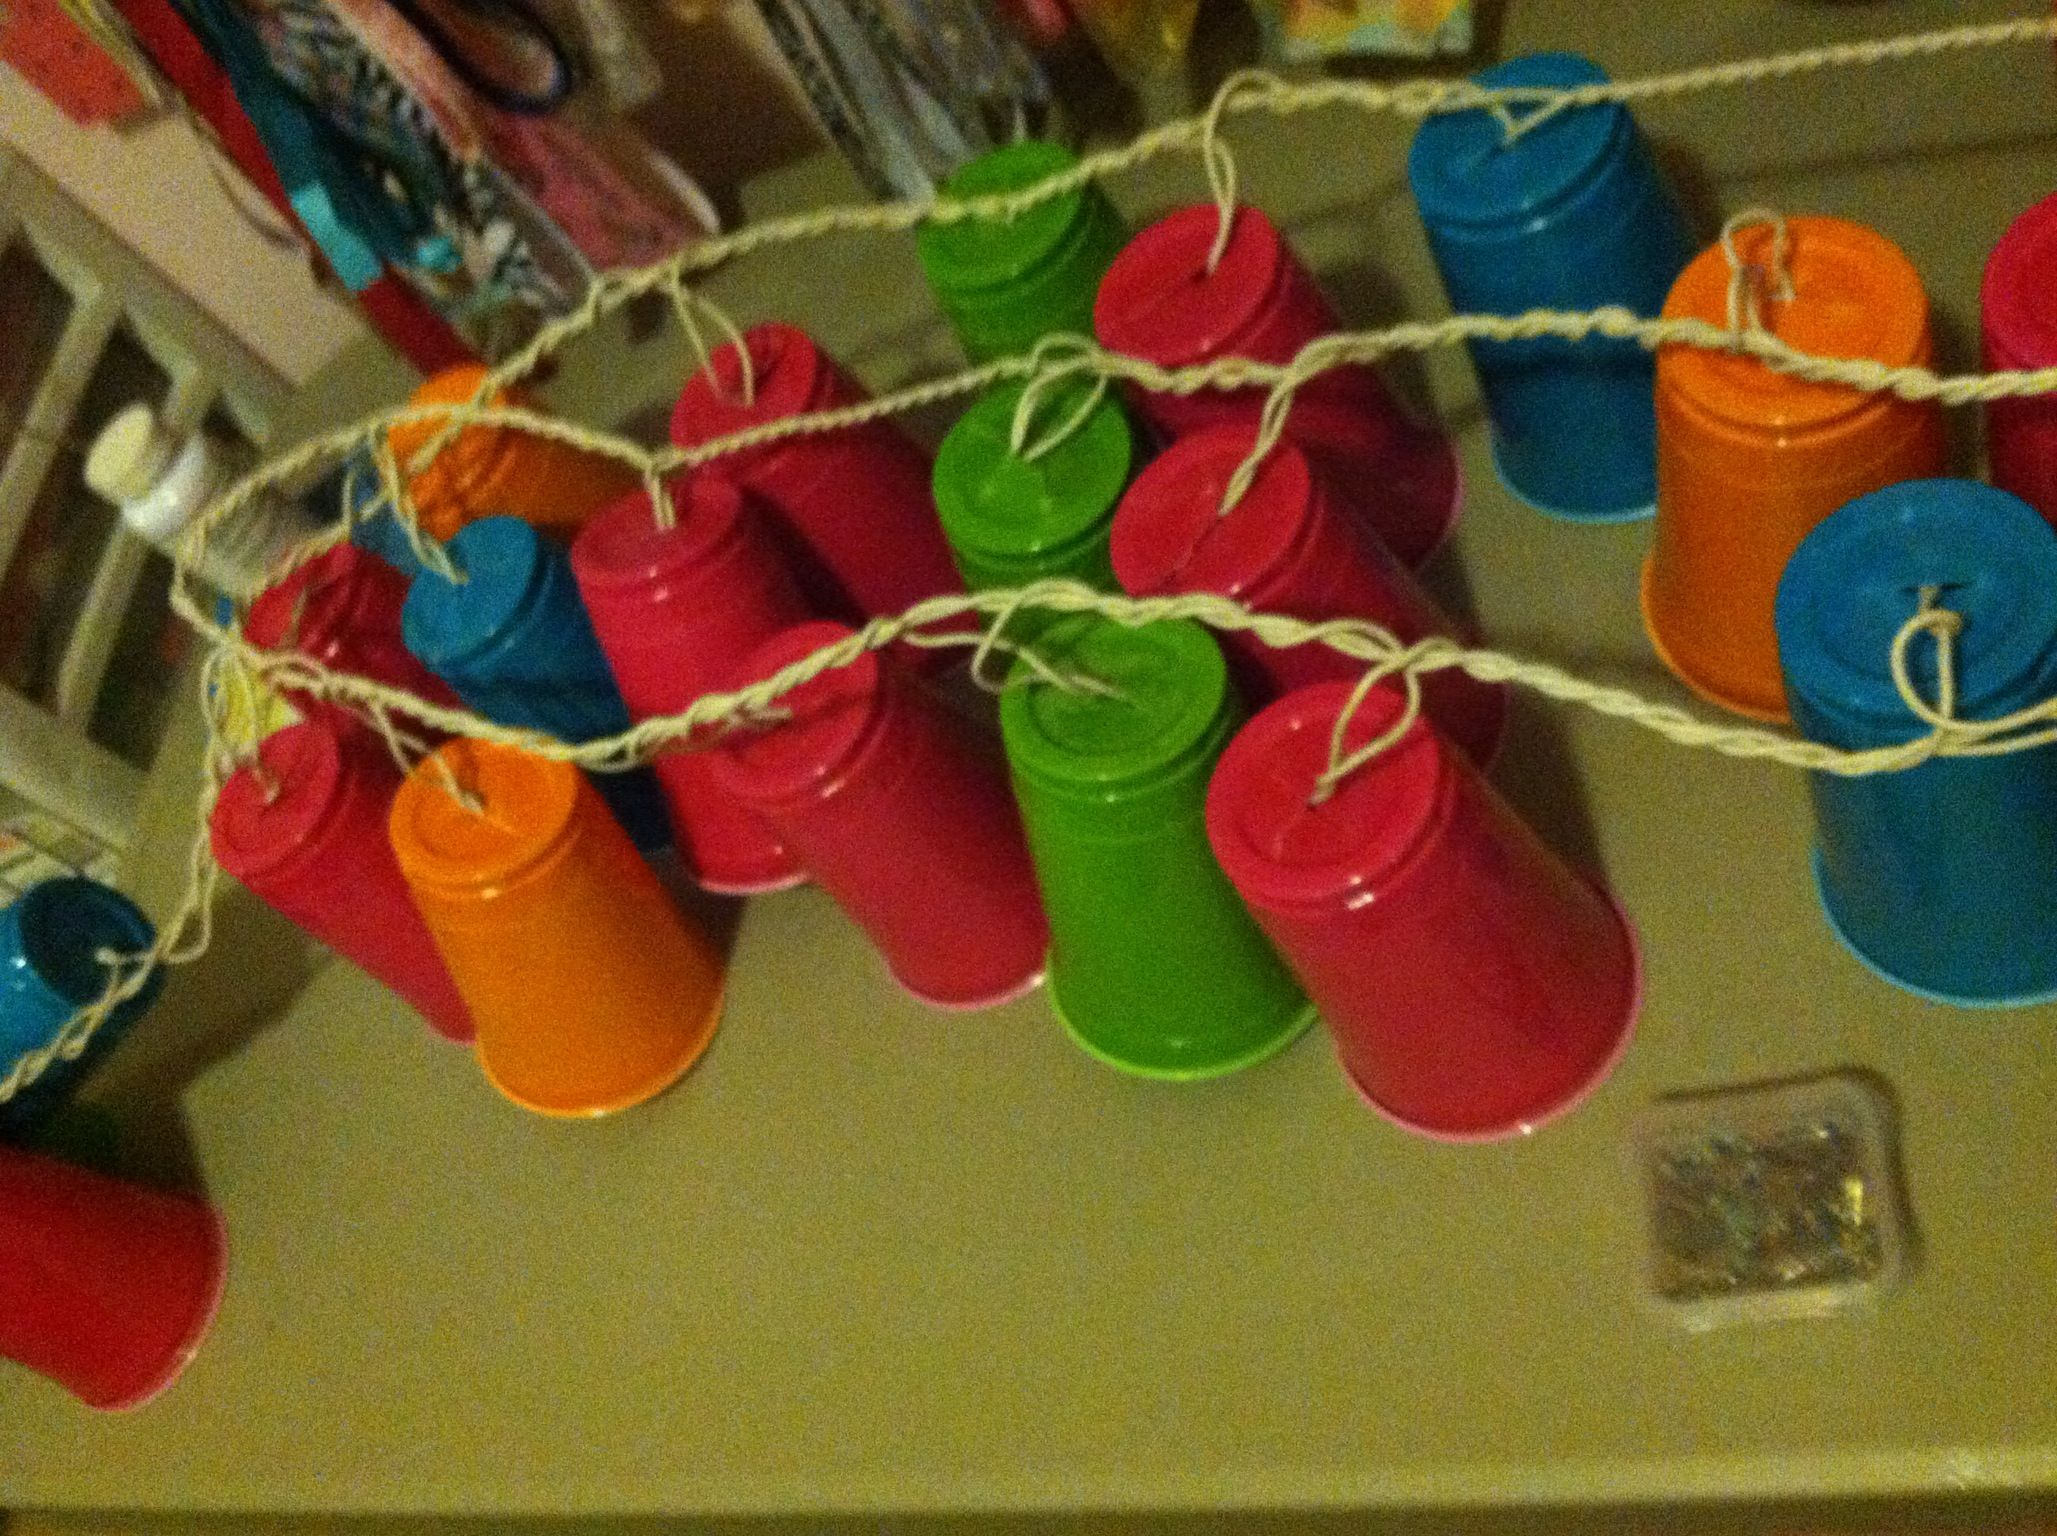 hanging outside party lights made from solo cups super cute